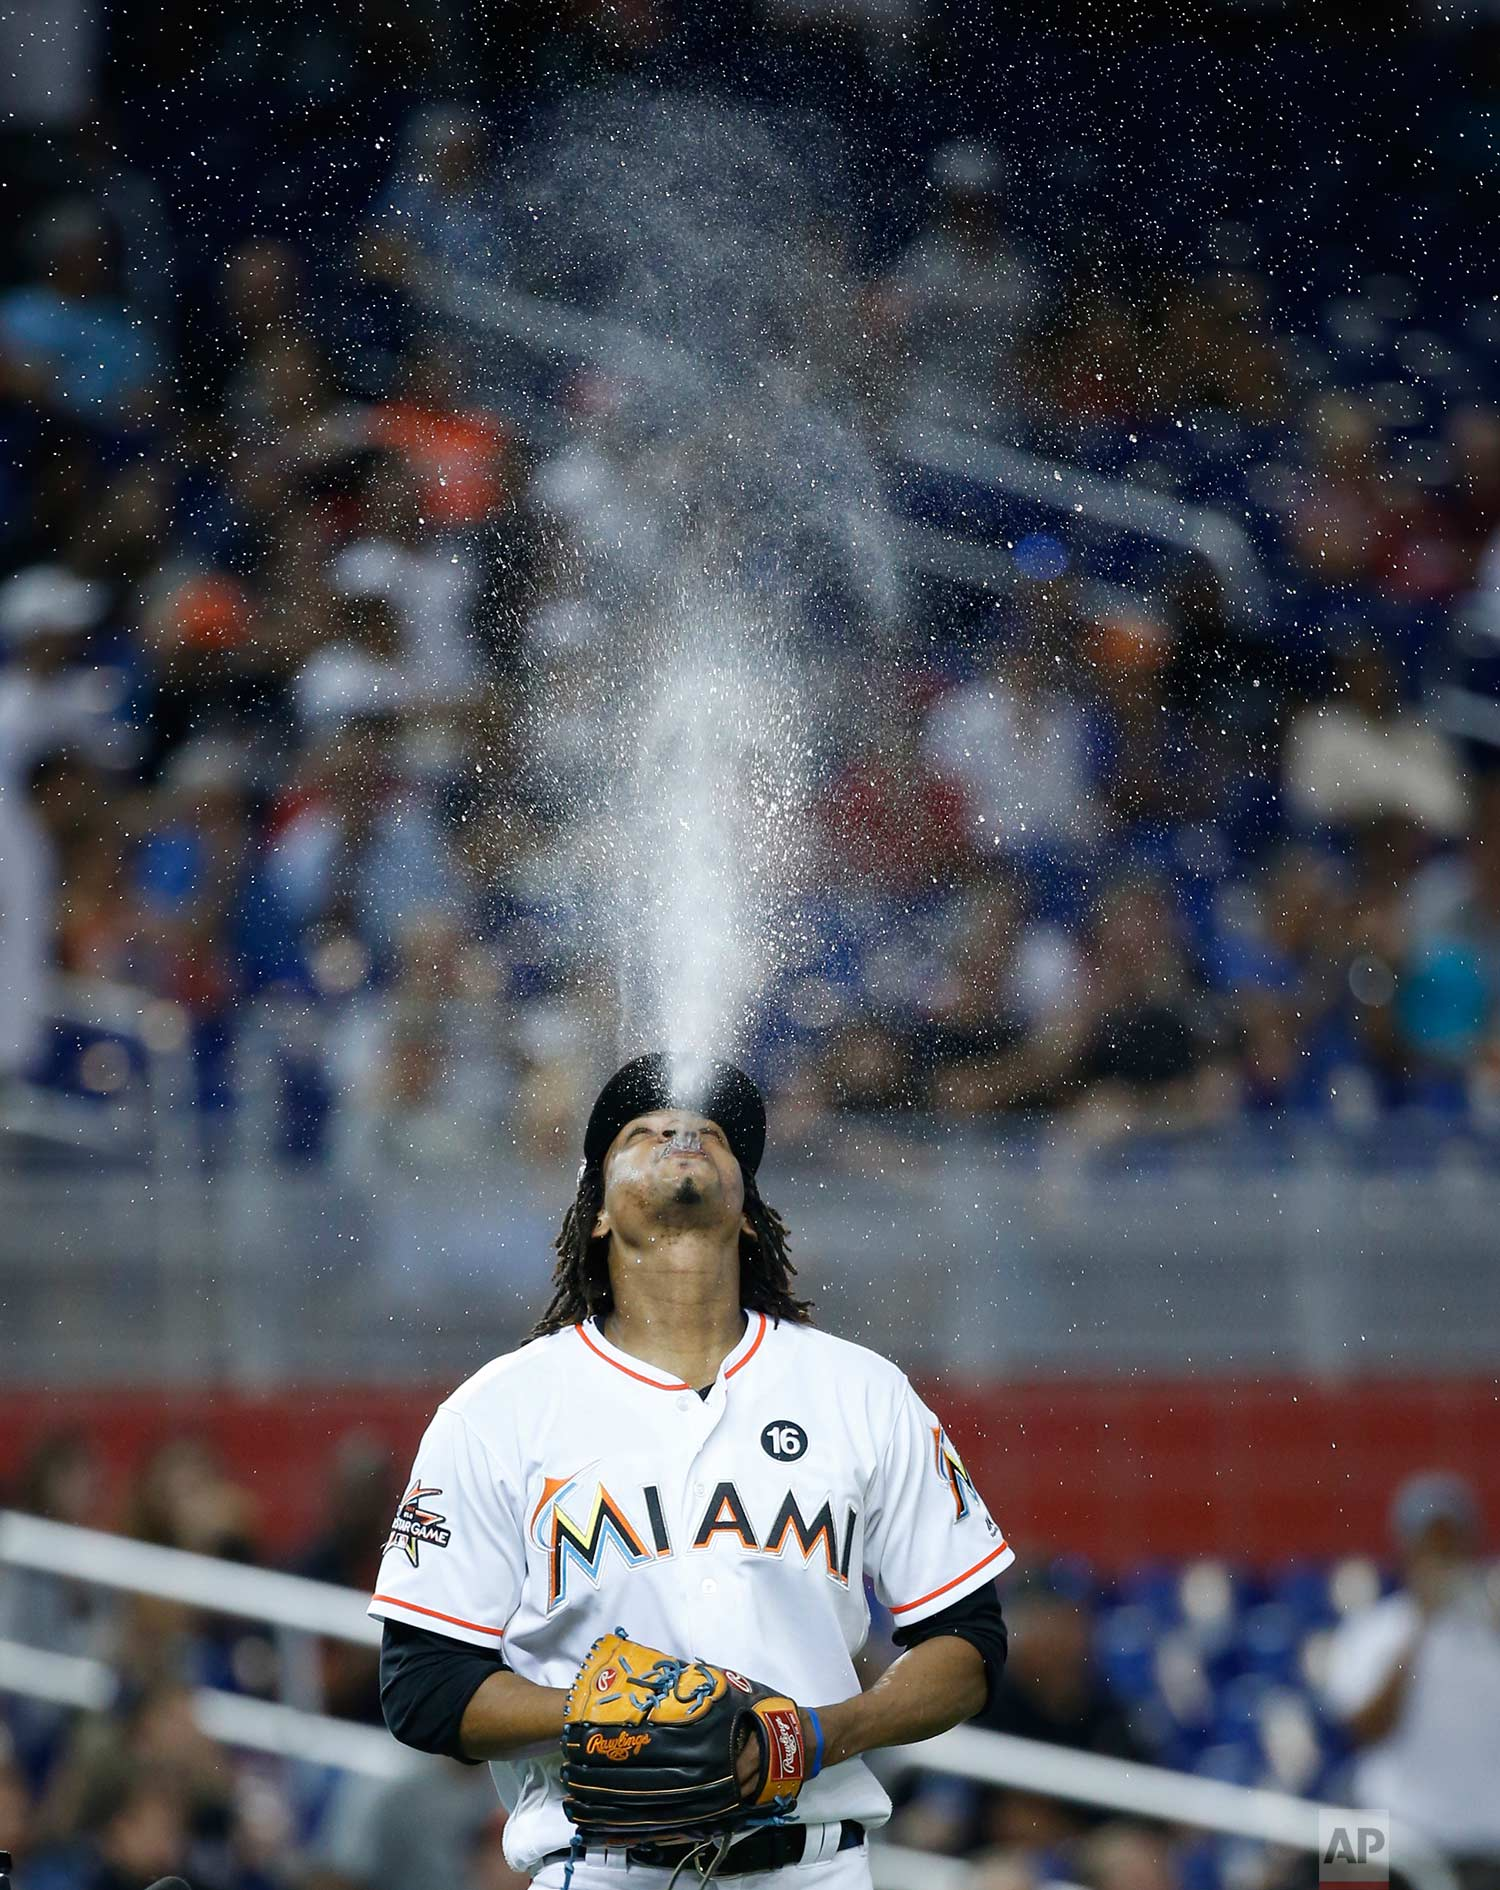 Miami Marlins starting pitcher Jose Urena spits up water as he heads to the mound during the first inning of a baseball game against the New York Mets, Thursday, June 29, 2017, in Miami. (AP Photo/Wilfredo Lee)